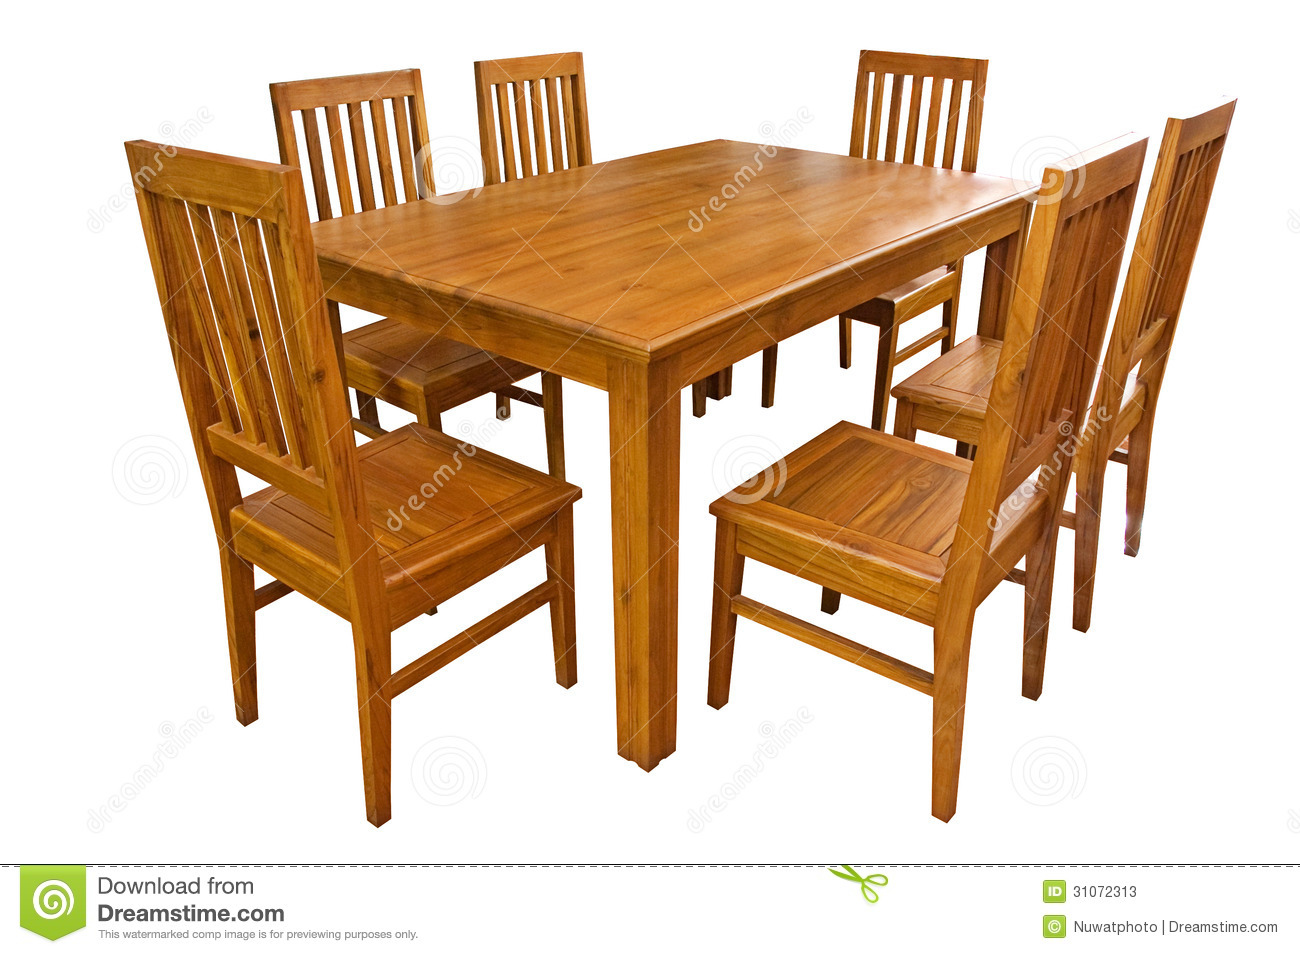 Dining table simple clipart.